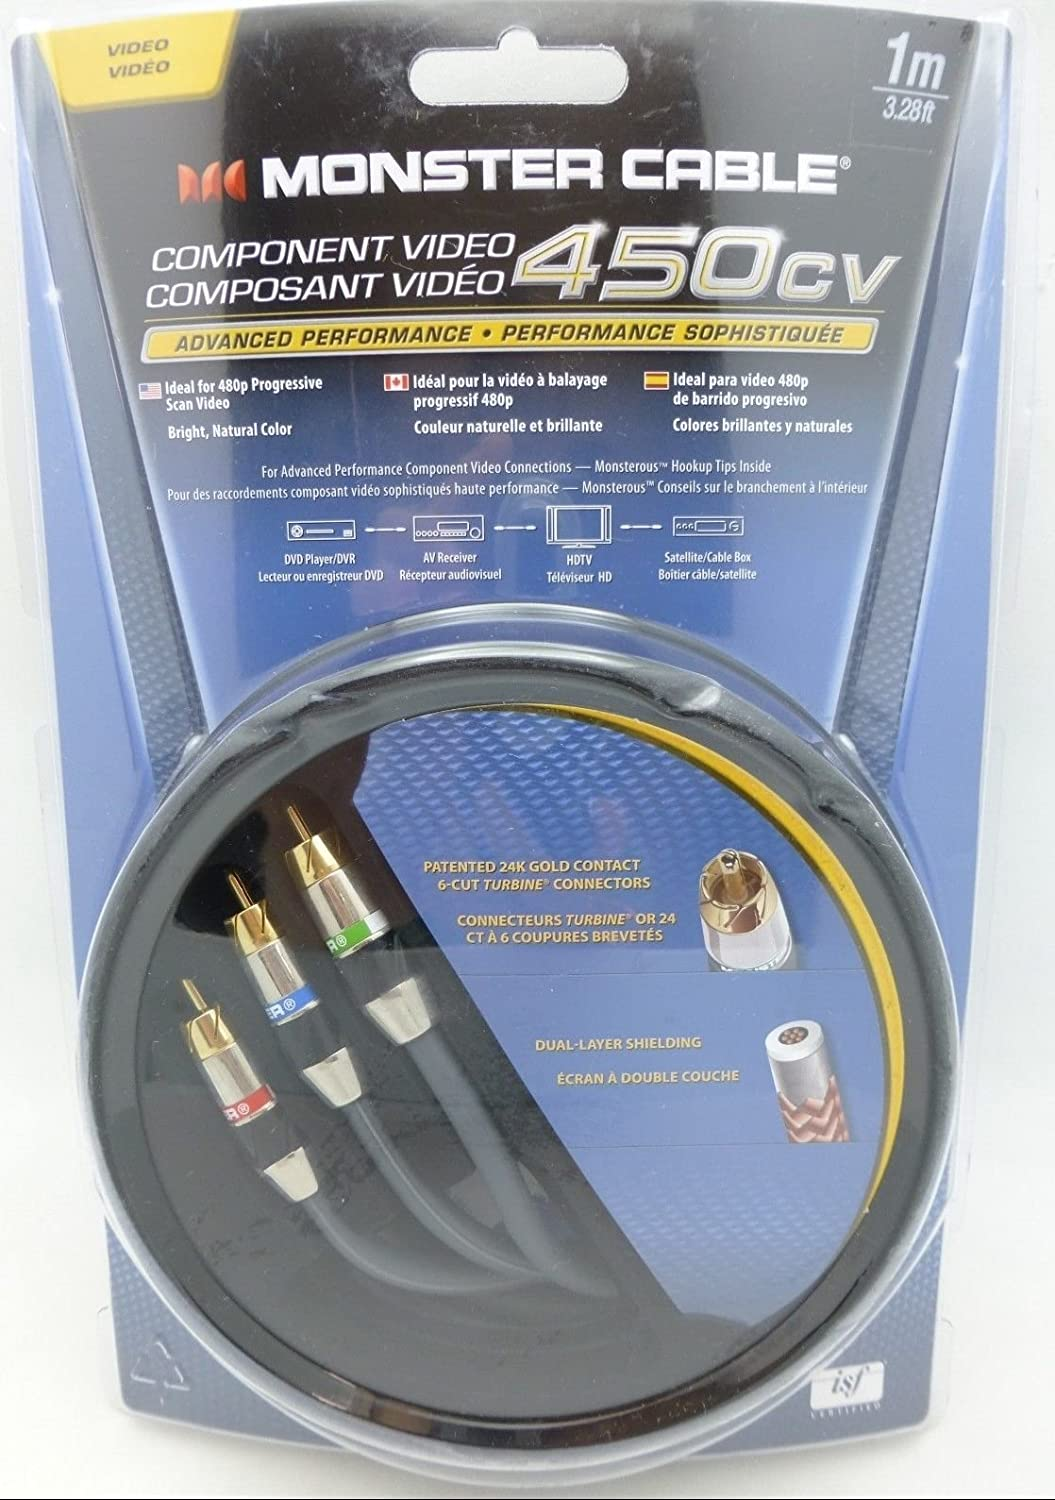 Amazon.com: Monster Cable 450CV 1 meter Component Video Cable Model ...